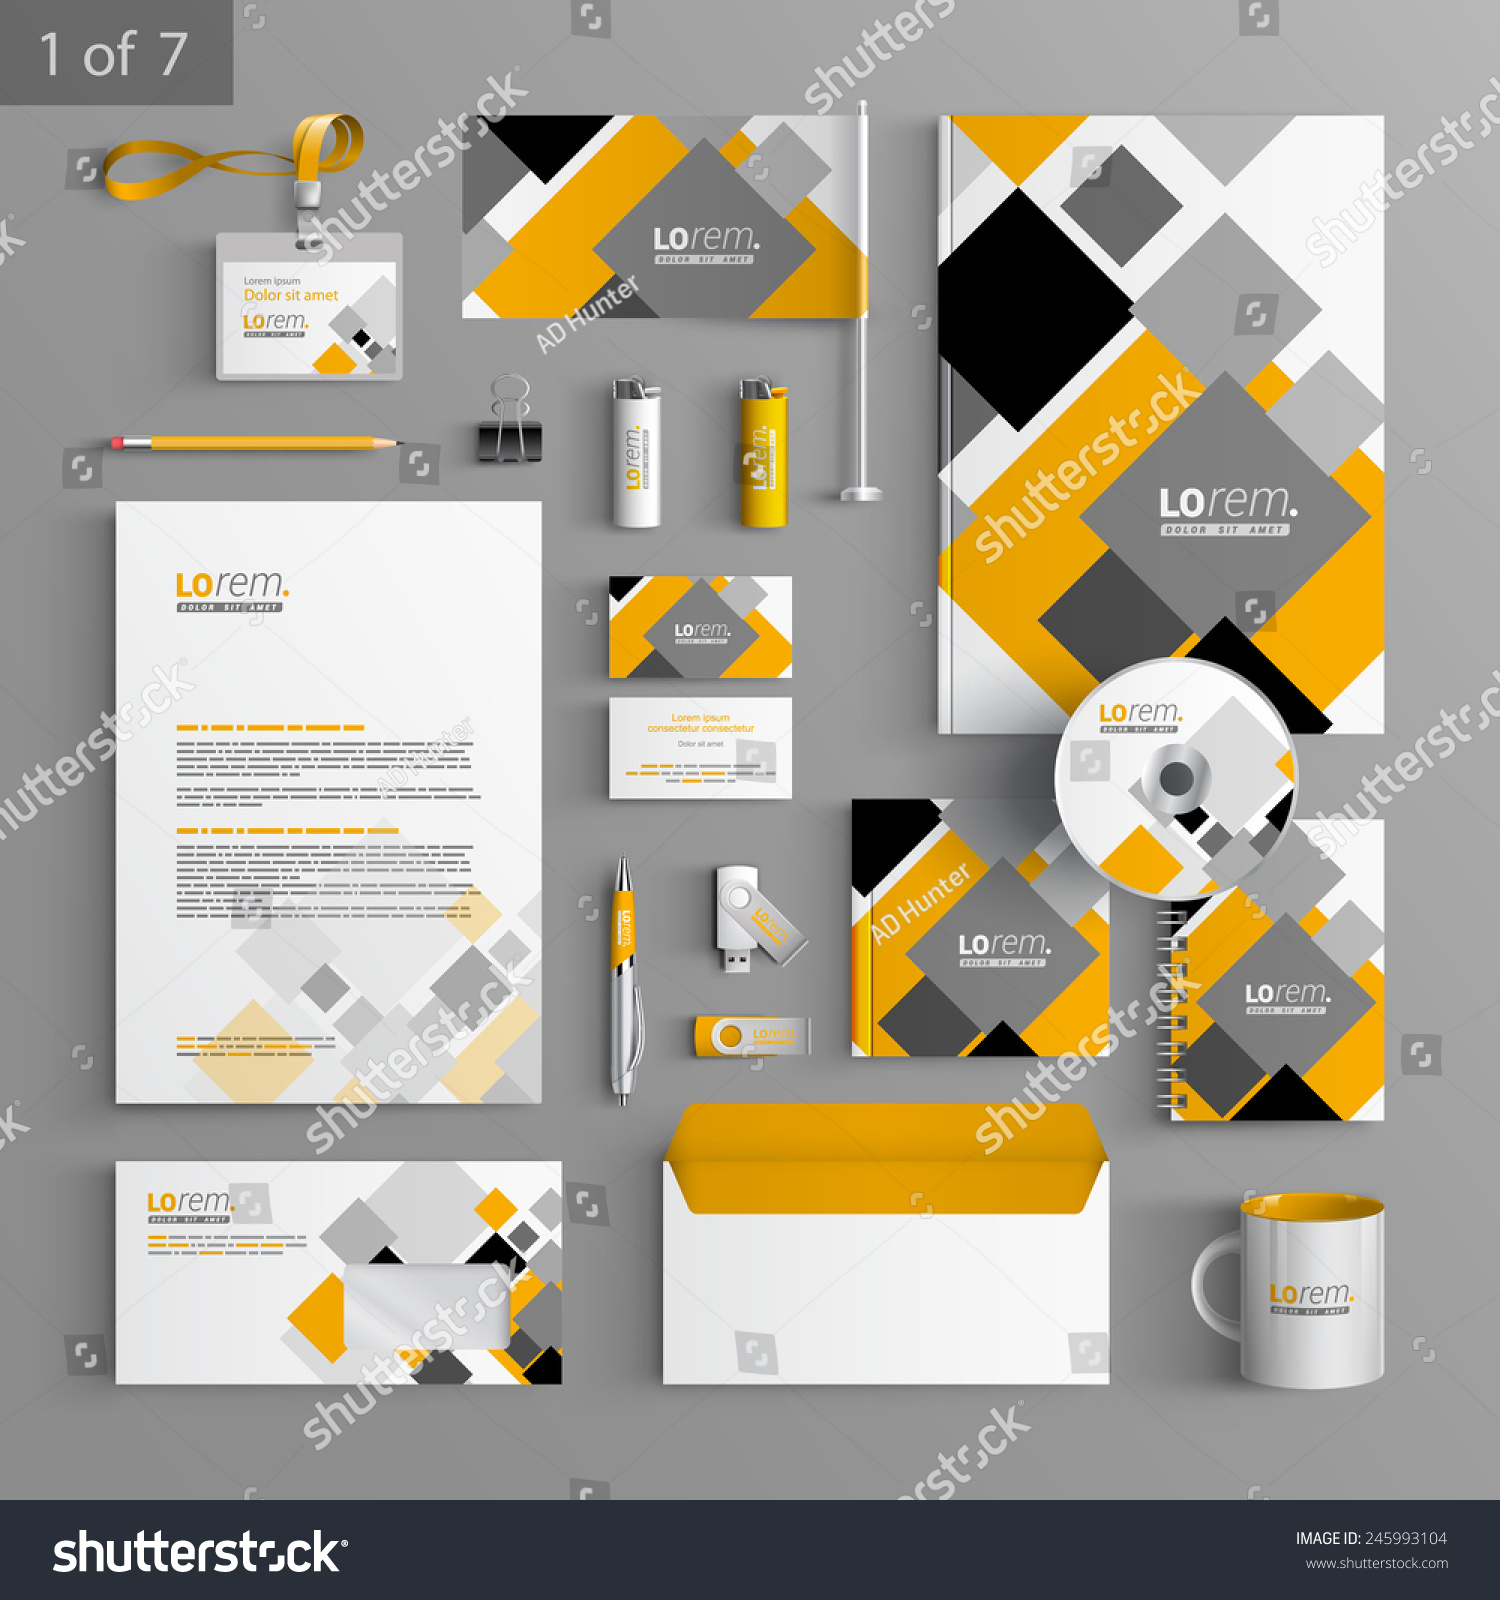 Blank Stationery And Corporate Identity Template Consist: White Corporate Identity Template Design Gray Stock Vector